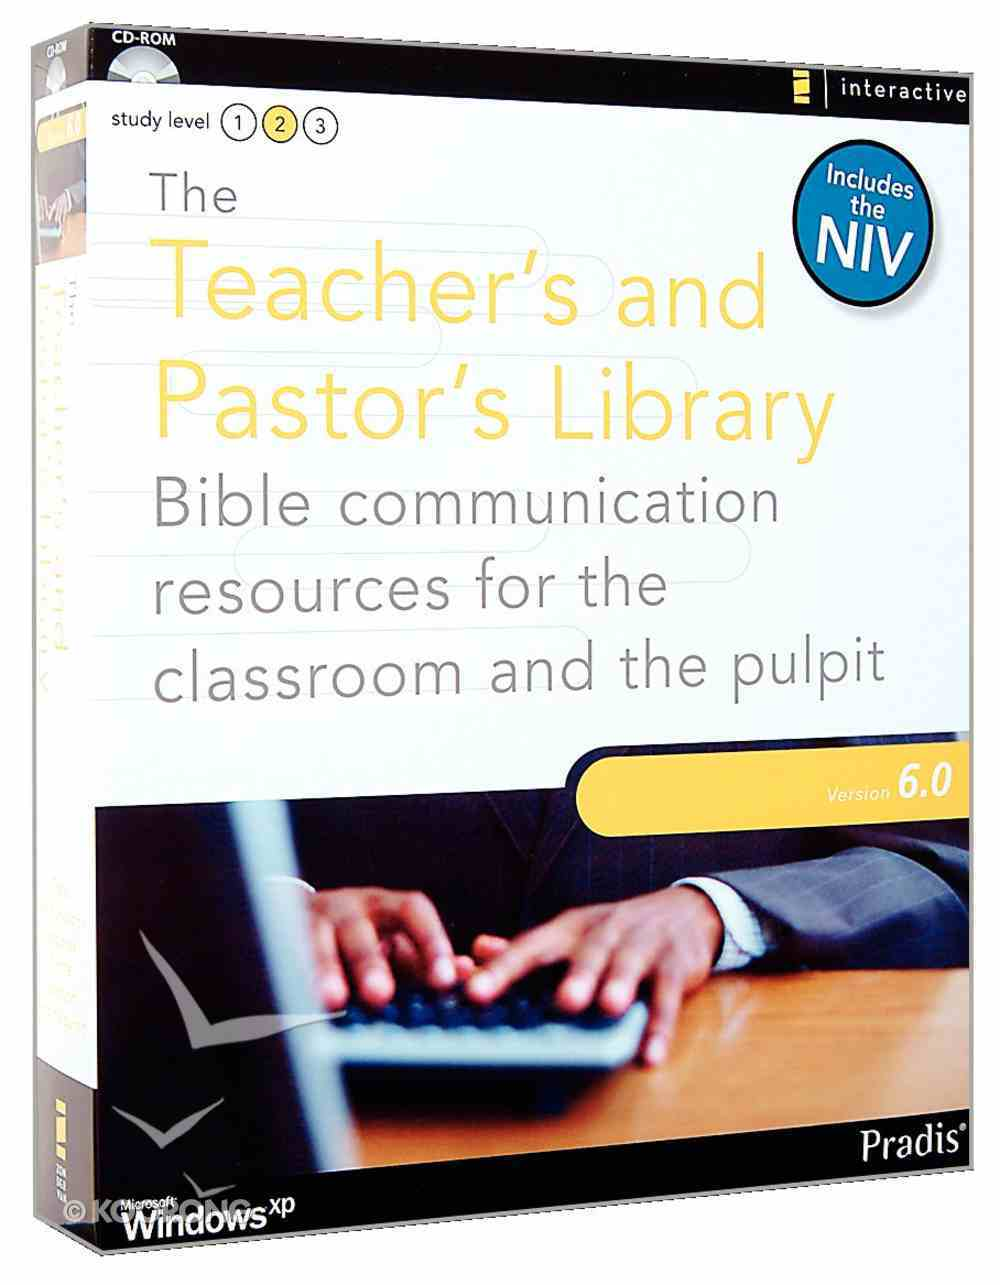 Teachers and Pastors Library 6.0 CDROM Win Includes the NIV CD-rom